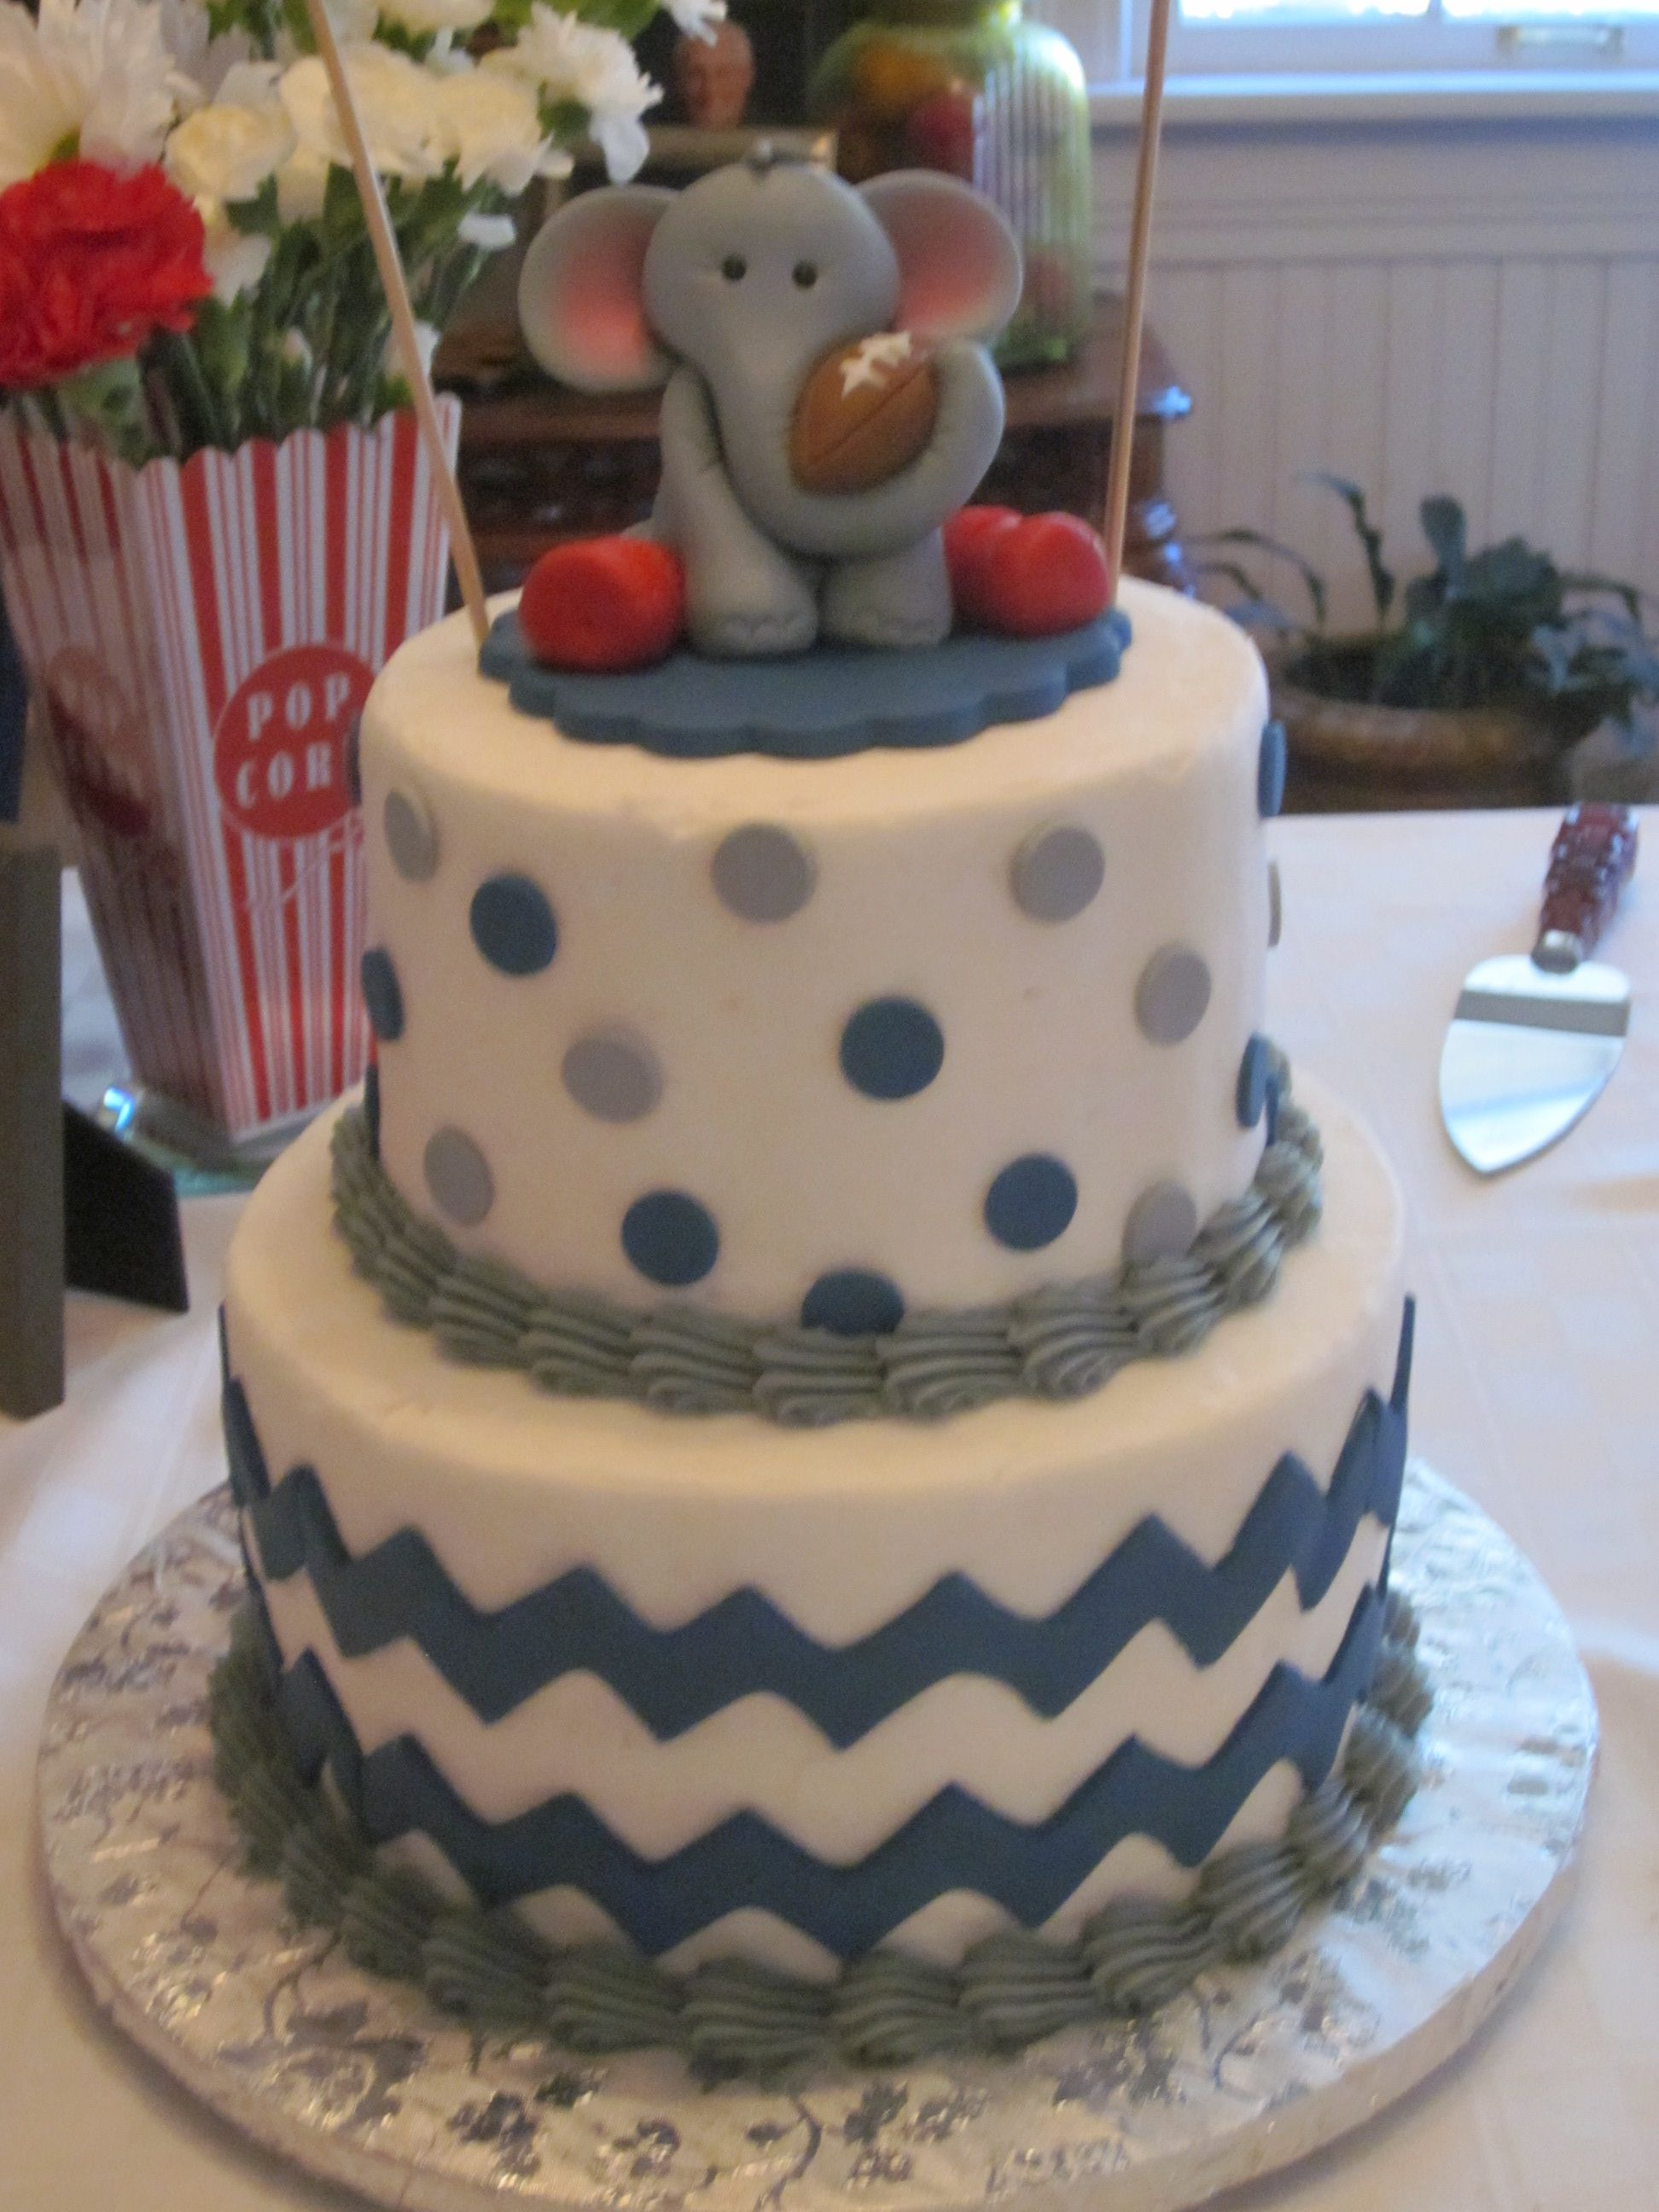 Chevron And Polka Dots Baby Shower Cake With A Handmade Elephant